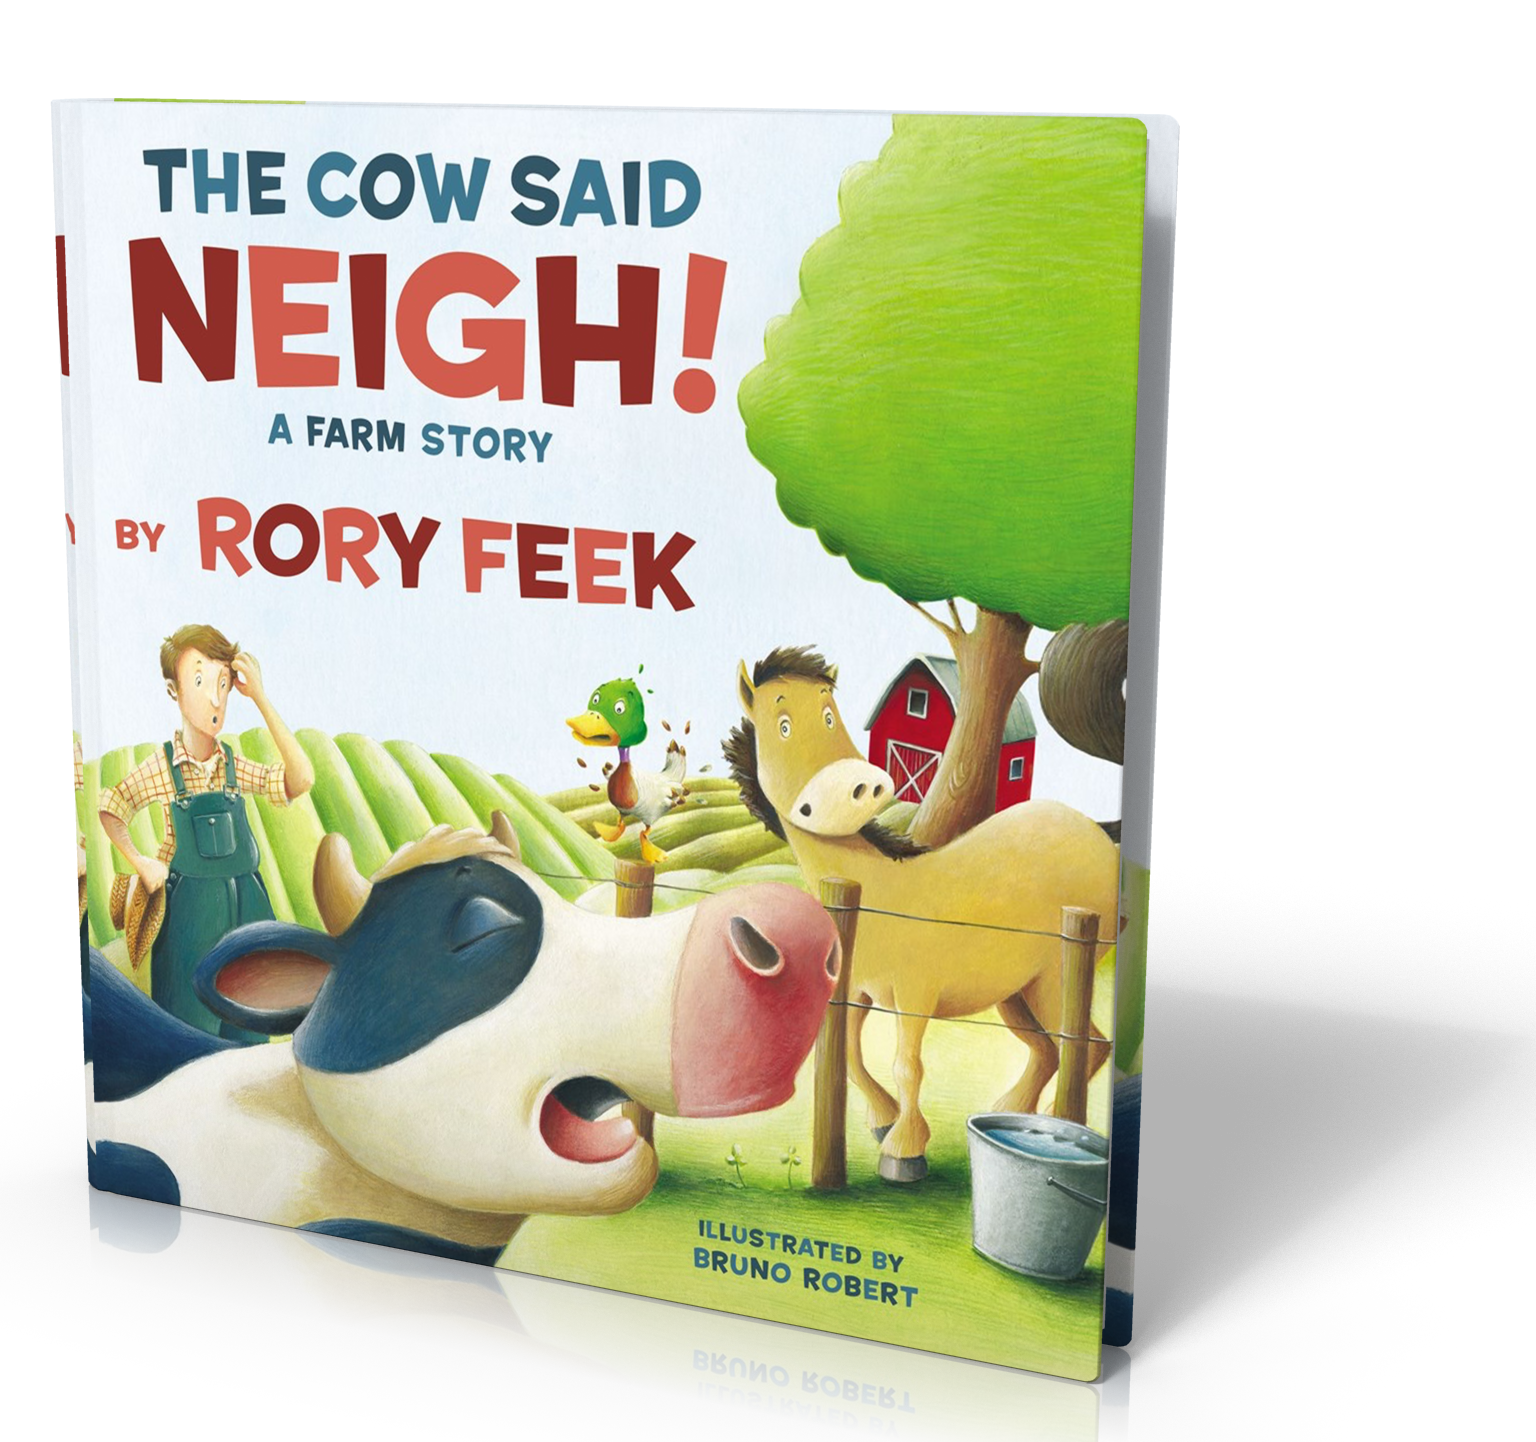 The Cow Said Neigh by Rory Feek